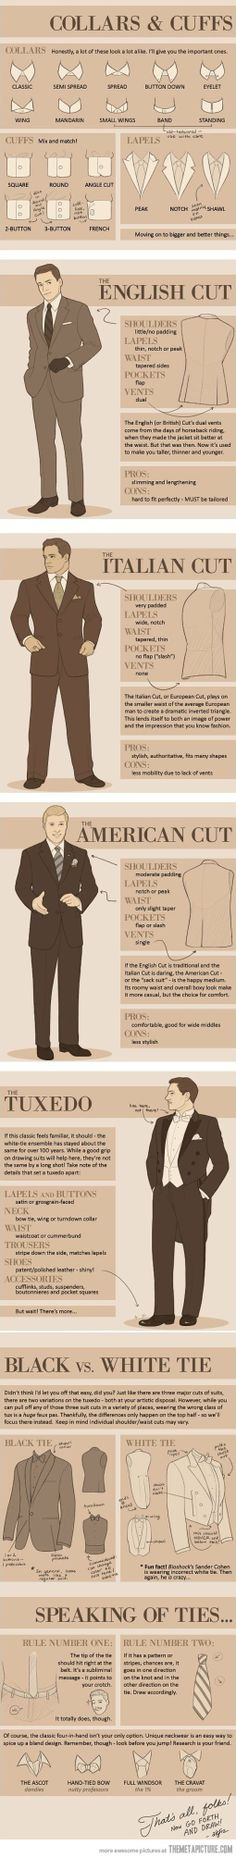 suit-collars-cuff-infographic